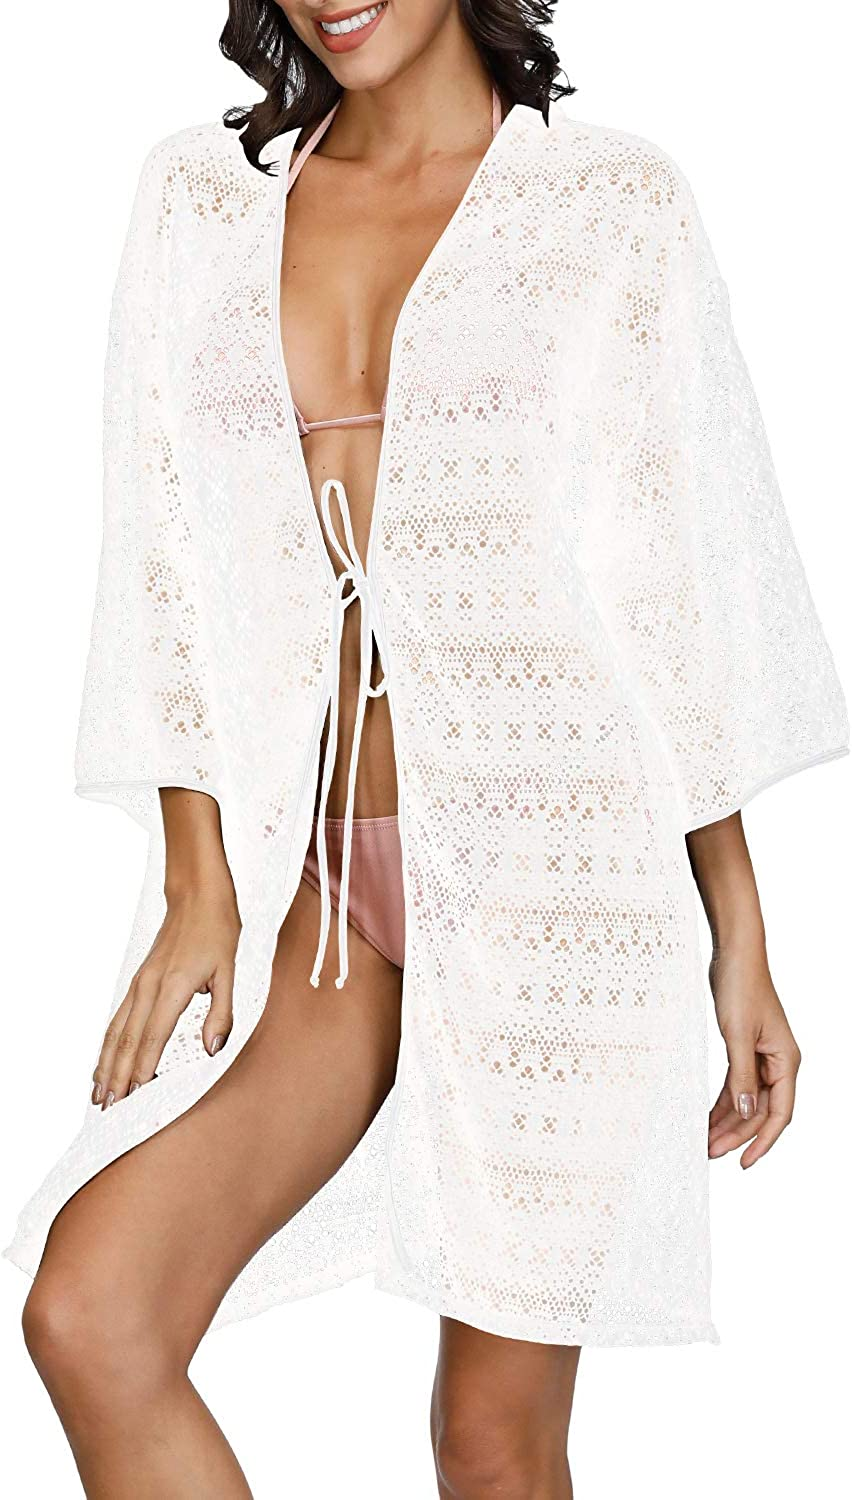 Sovoyontee Women's Crochet Beach Bathing Suit Swim Swimsuit Cover Up, One Size(Bust 46.46